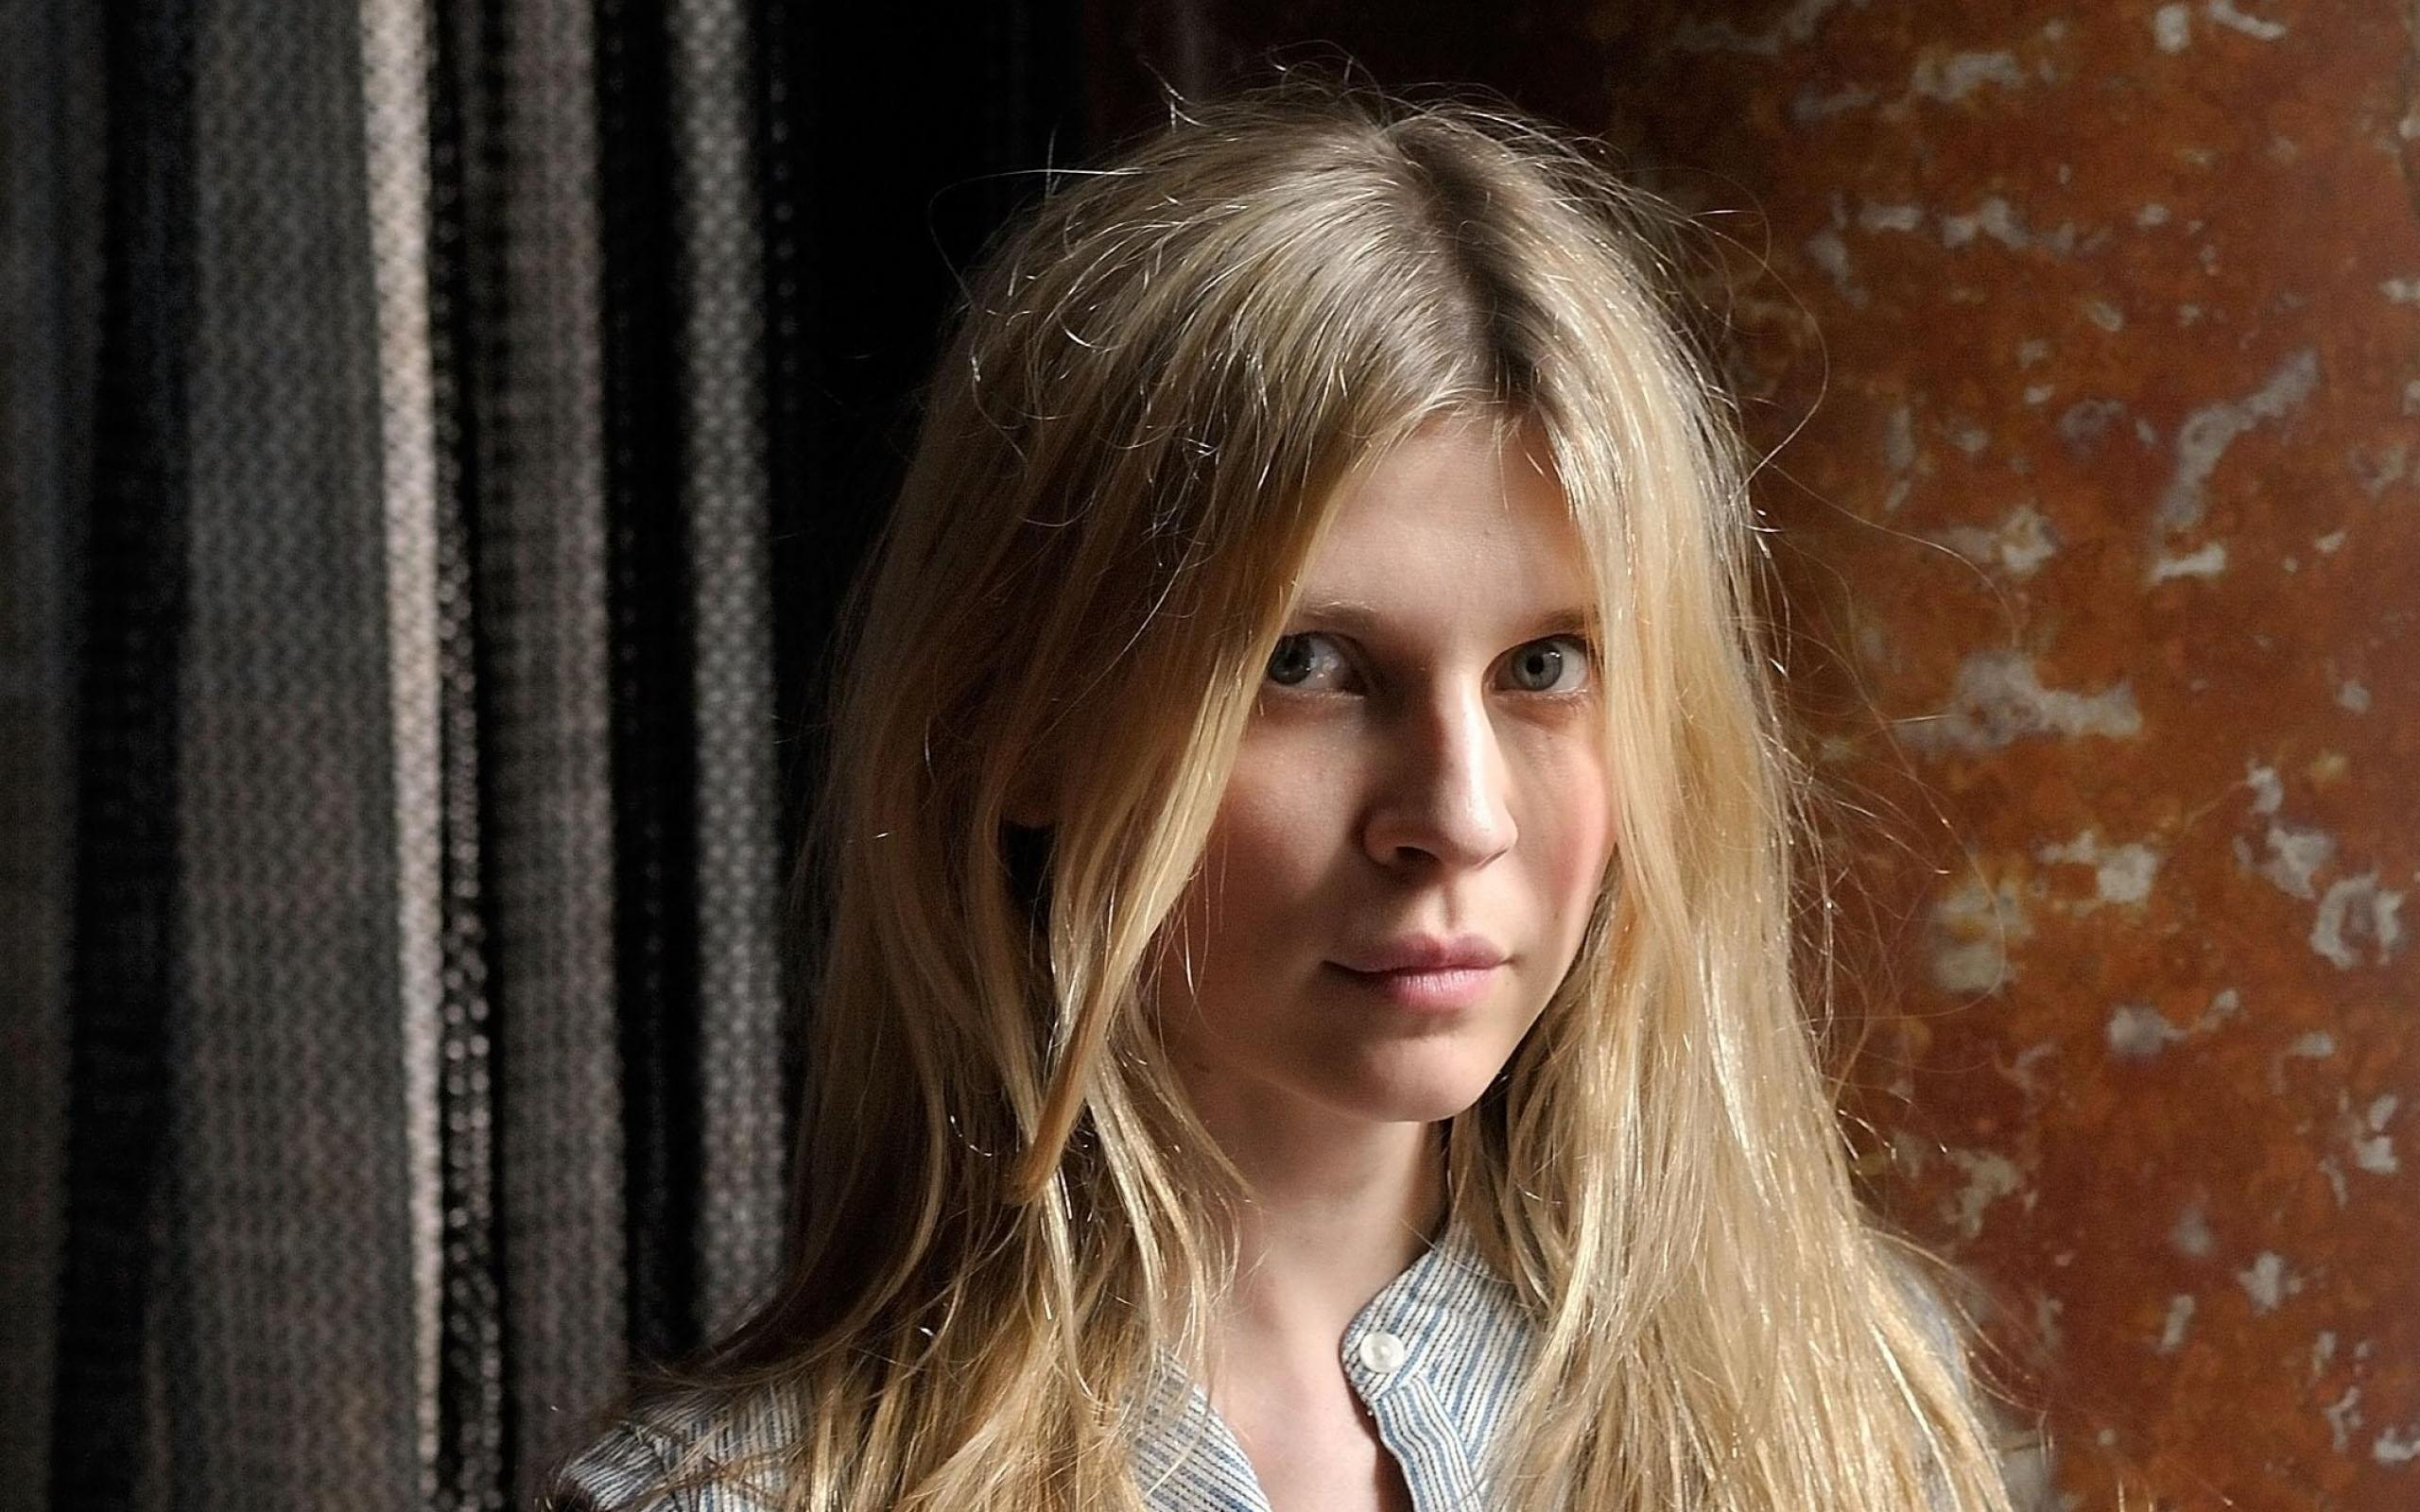 2560x1600 - Clemence Poesy Wallpapers 19